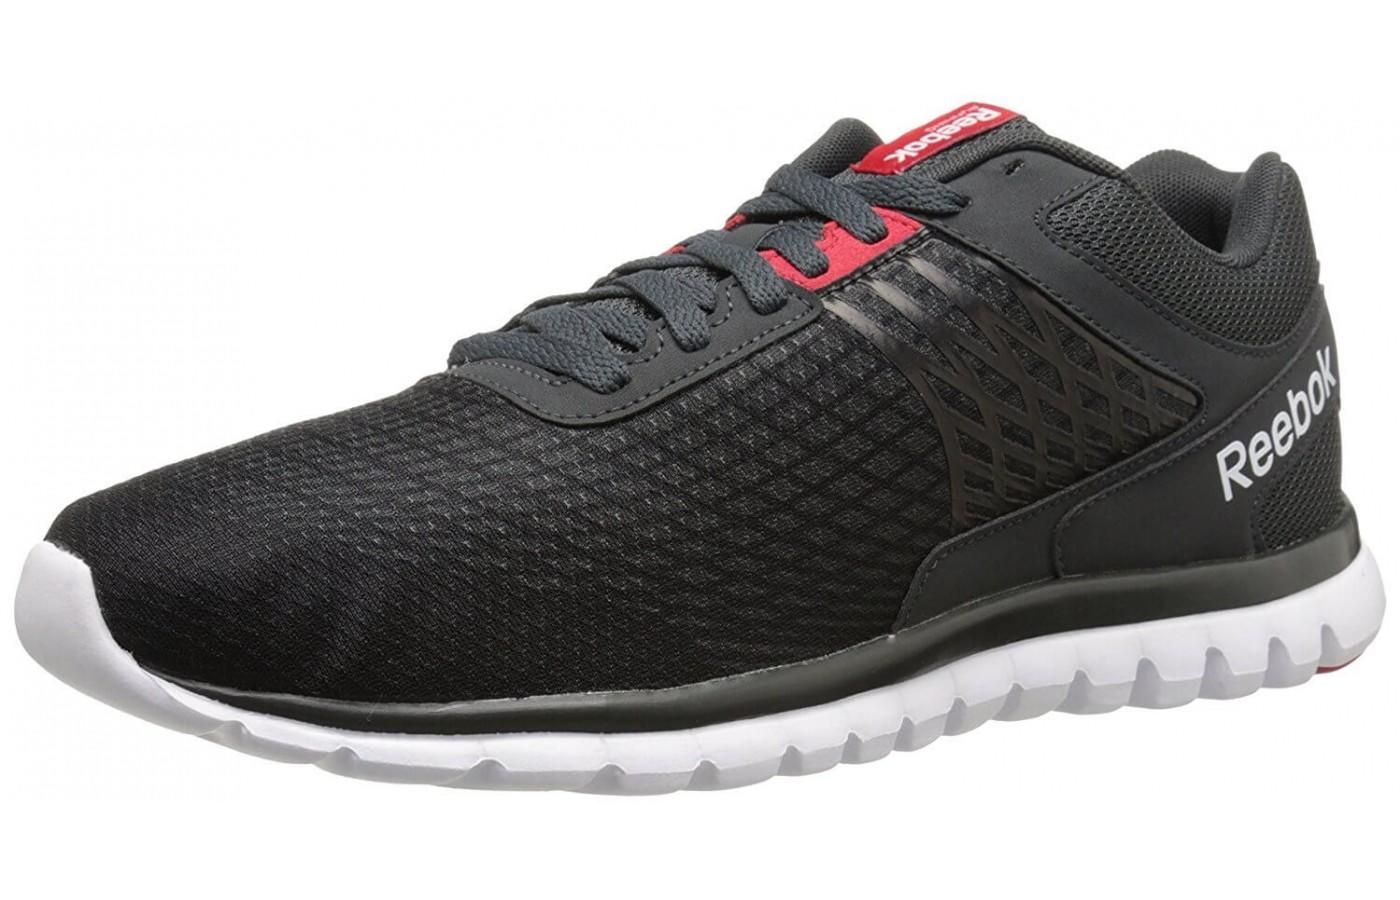 Reebok Sublite Escape 3.0. Find this Pin and more on Running Shoes ... aa229bcb0